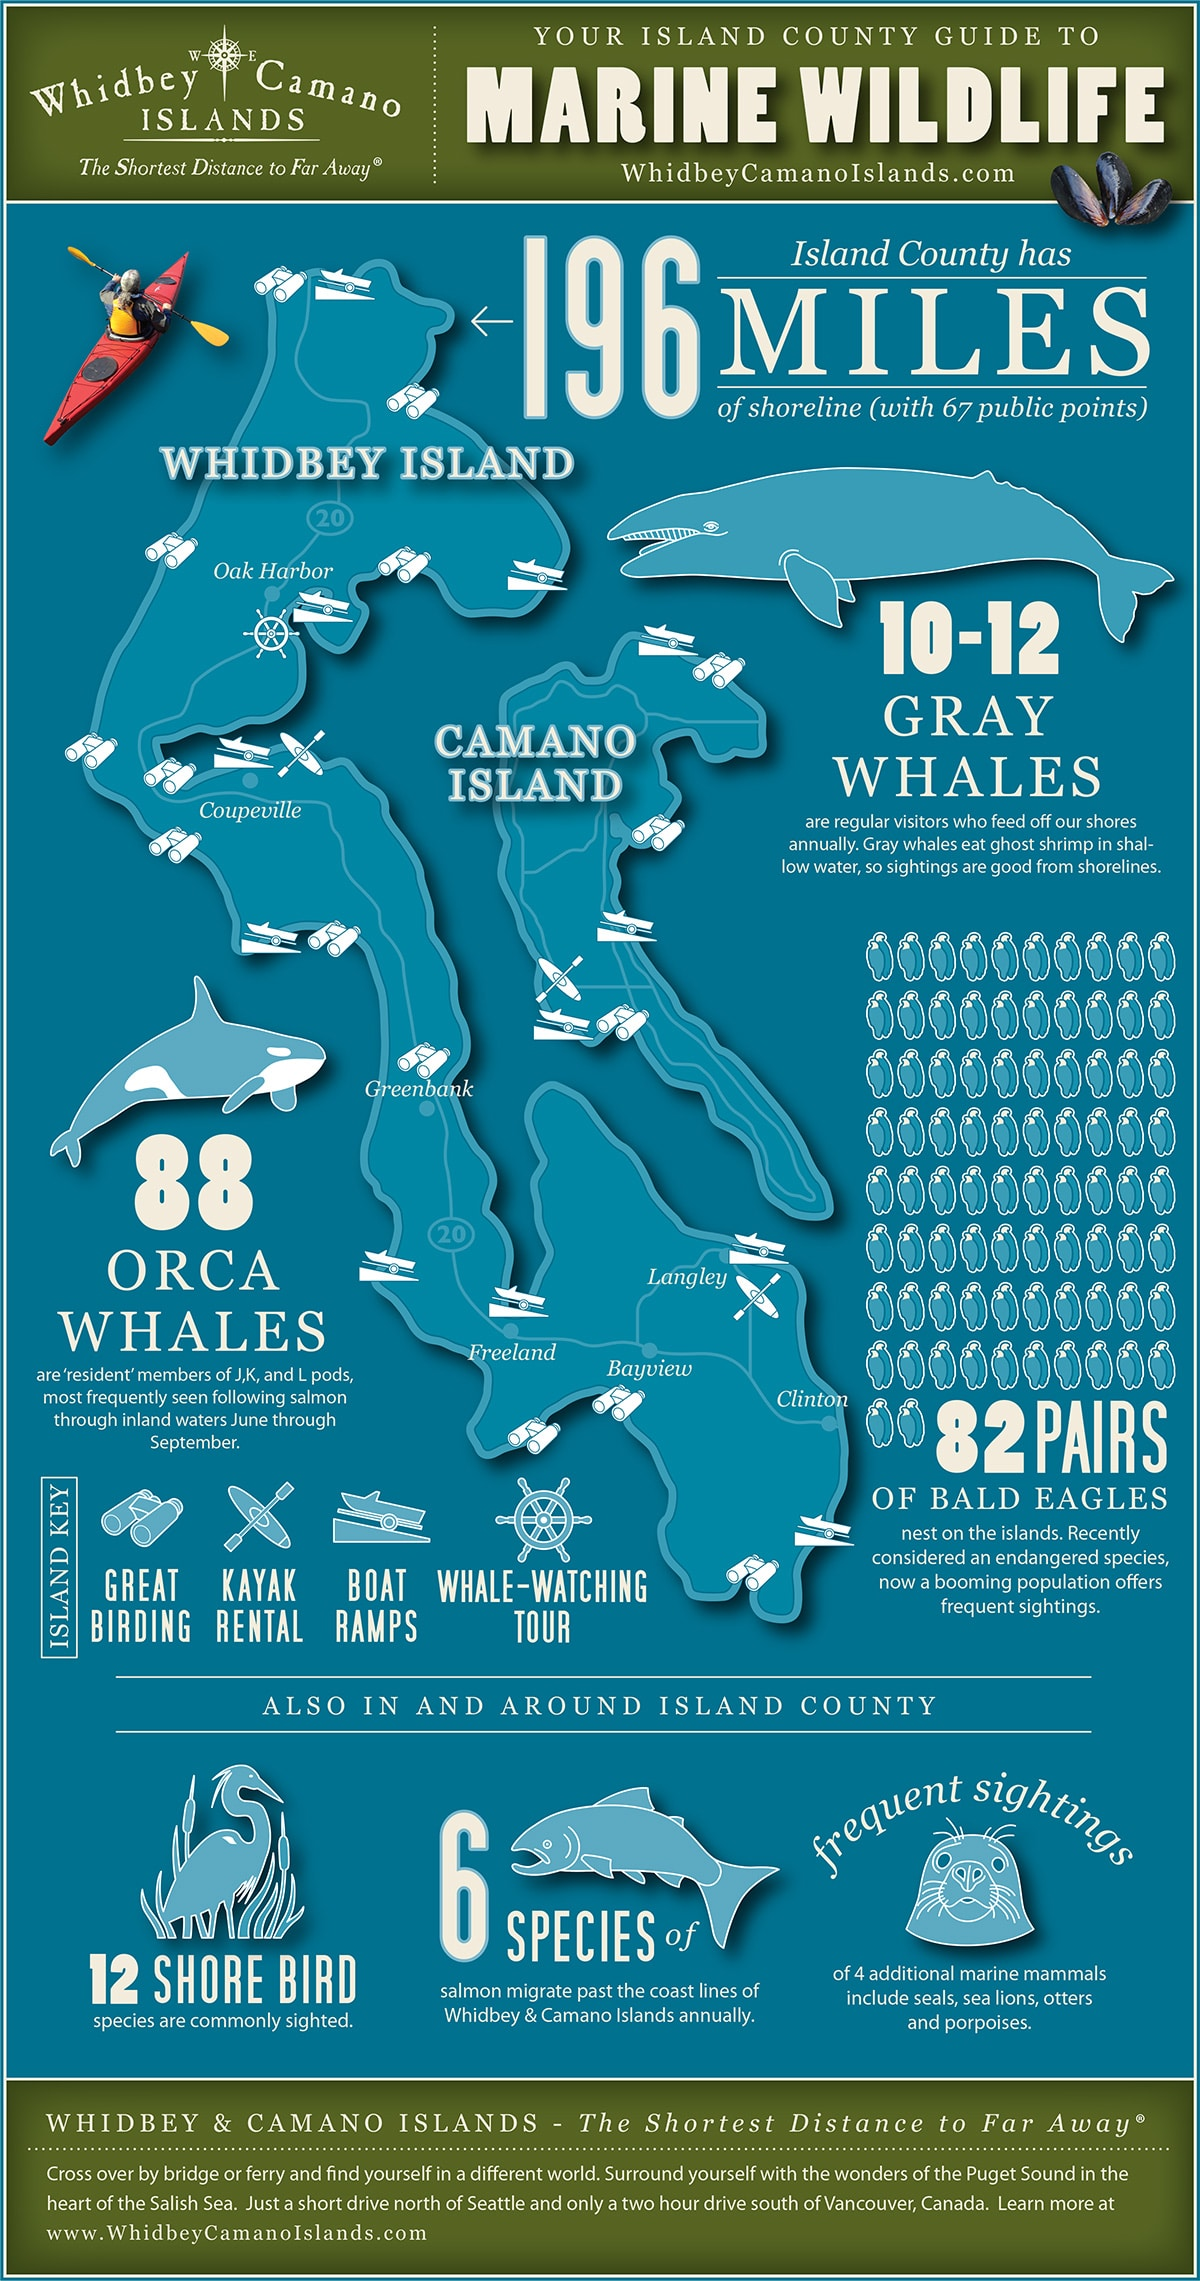 Hd Car Wallpapers Free Download Zip Marine Wildlife Infographic Whidbey And Camano Islands